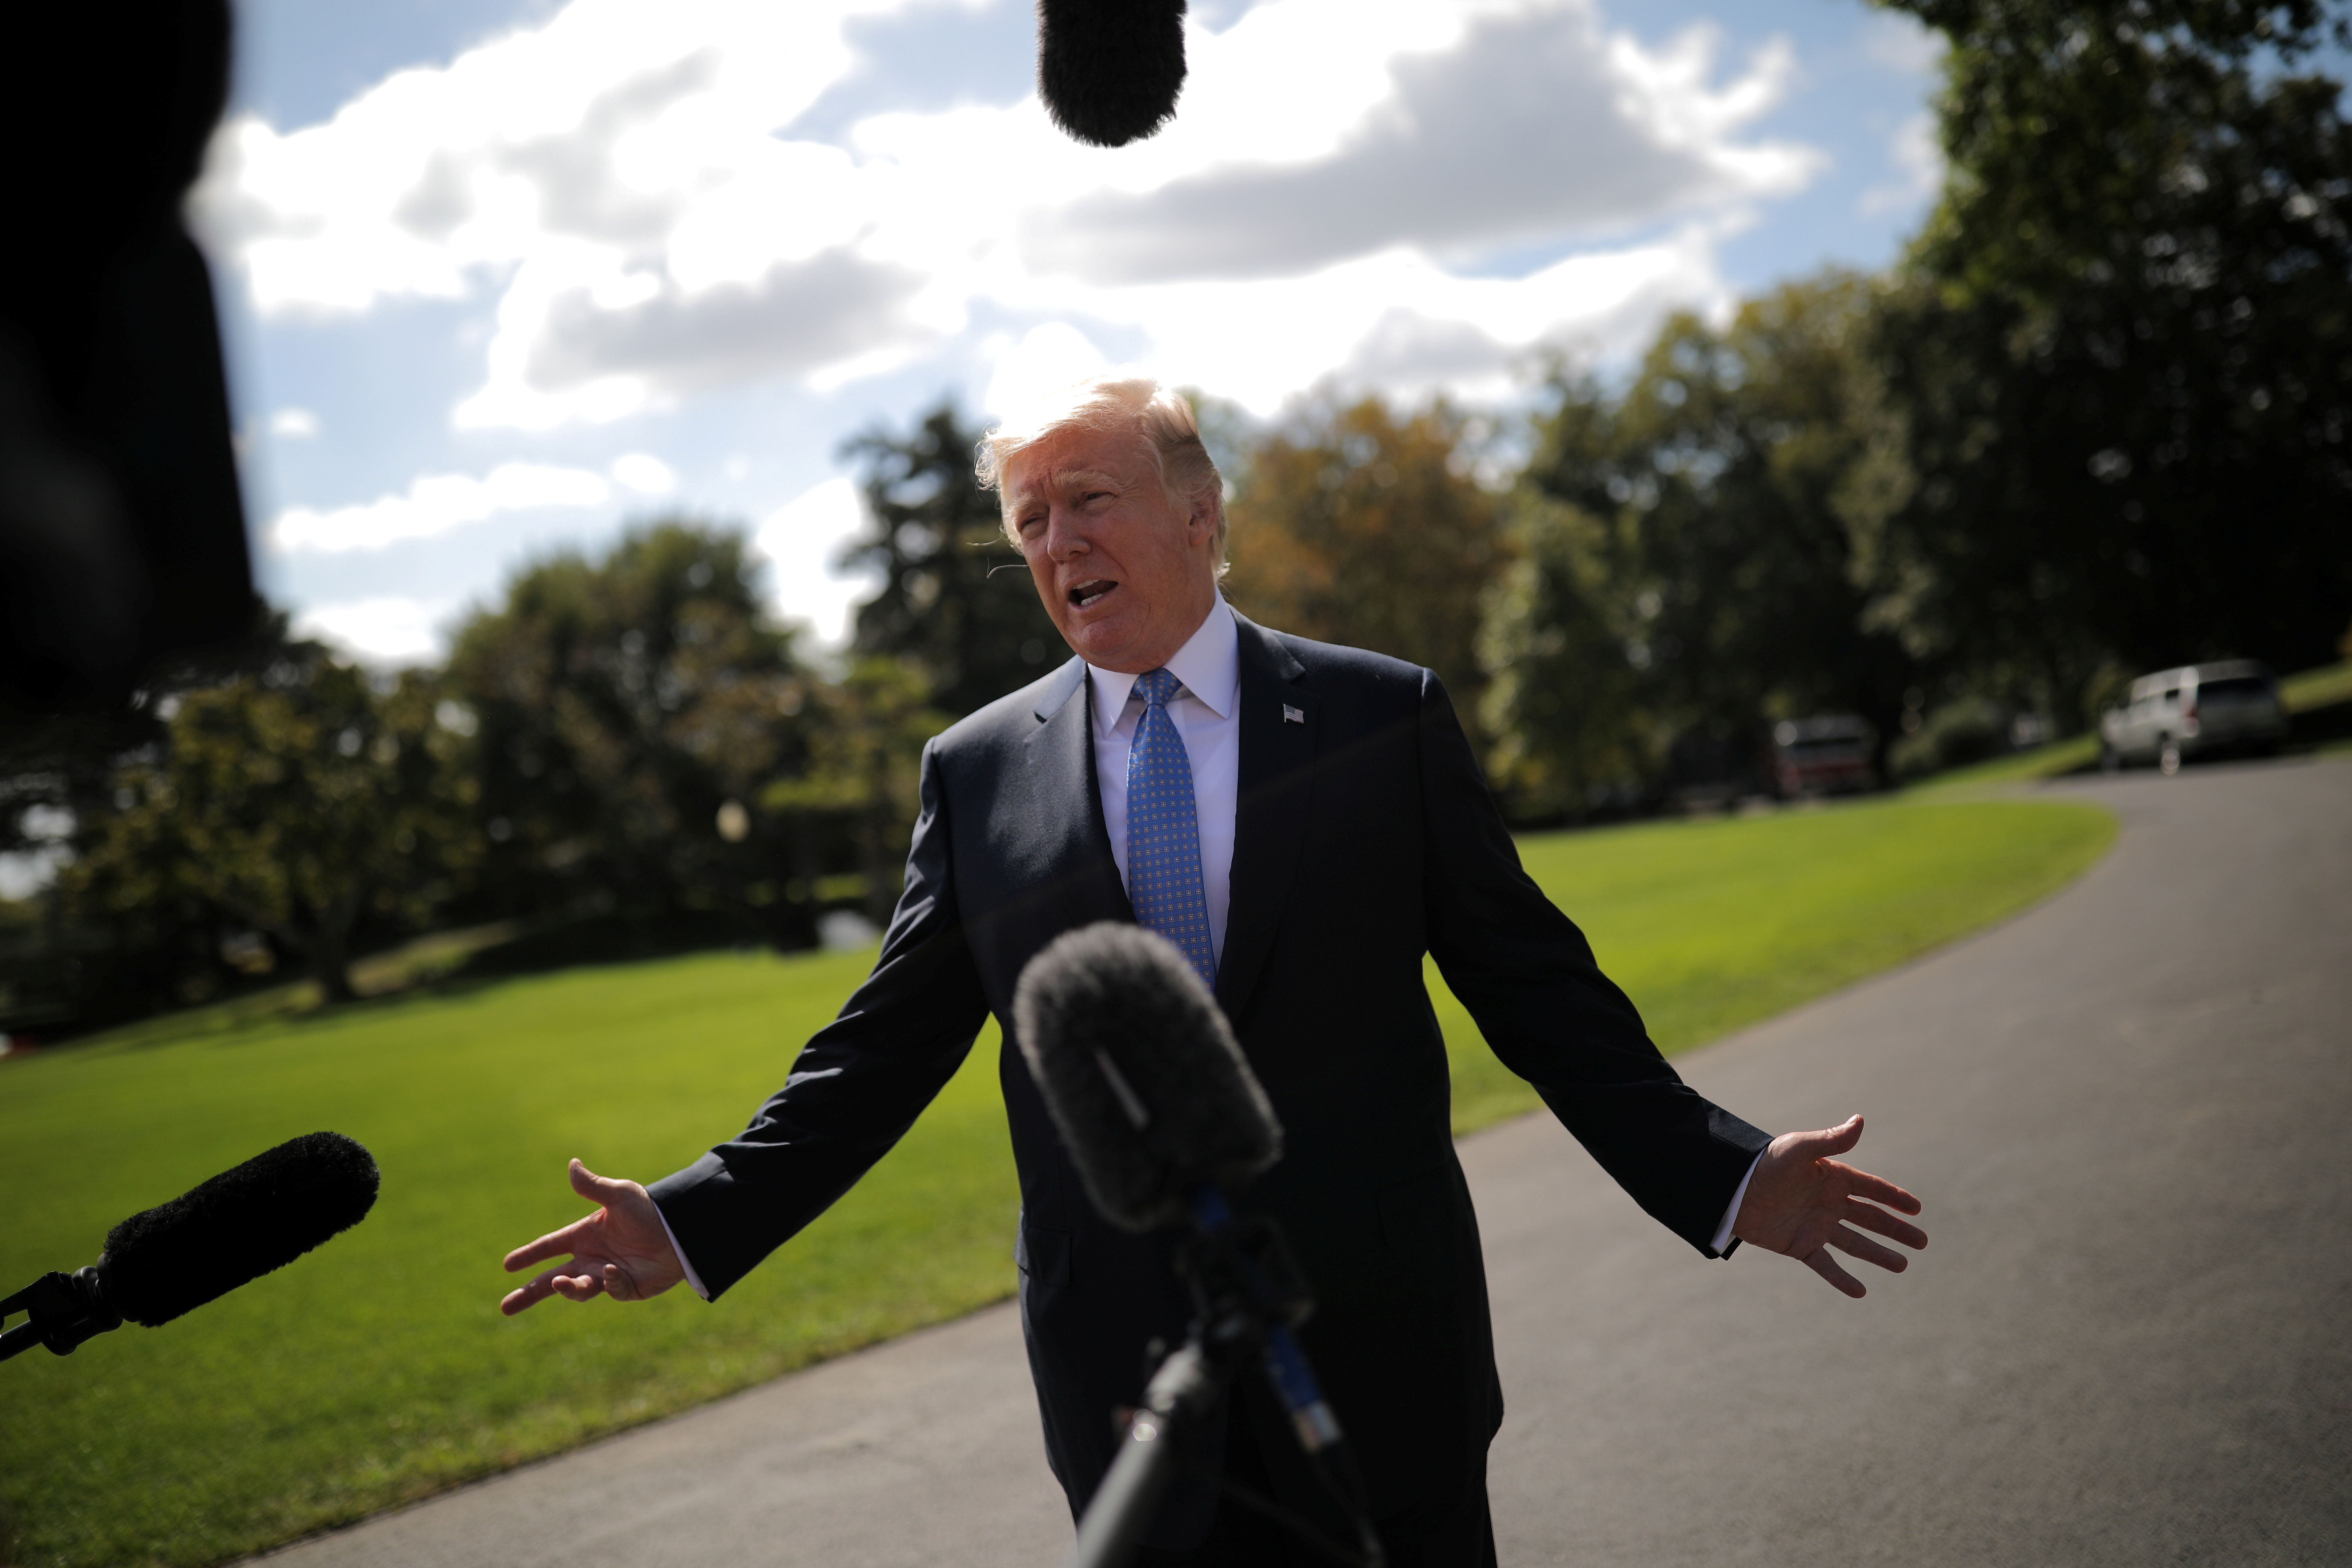 U.S. President Donald Trump talks with reporters as he departs the White House for Indianapolis, in Washington, U.S., September 27, 2017. REUTERS/Carlos Barria